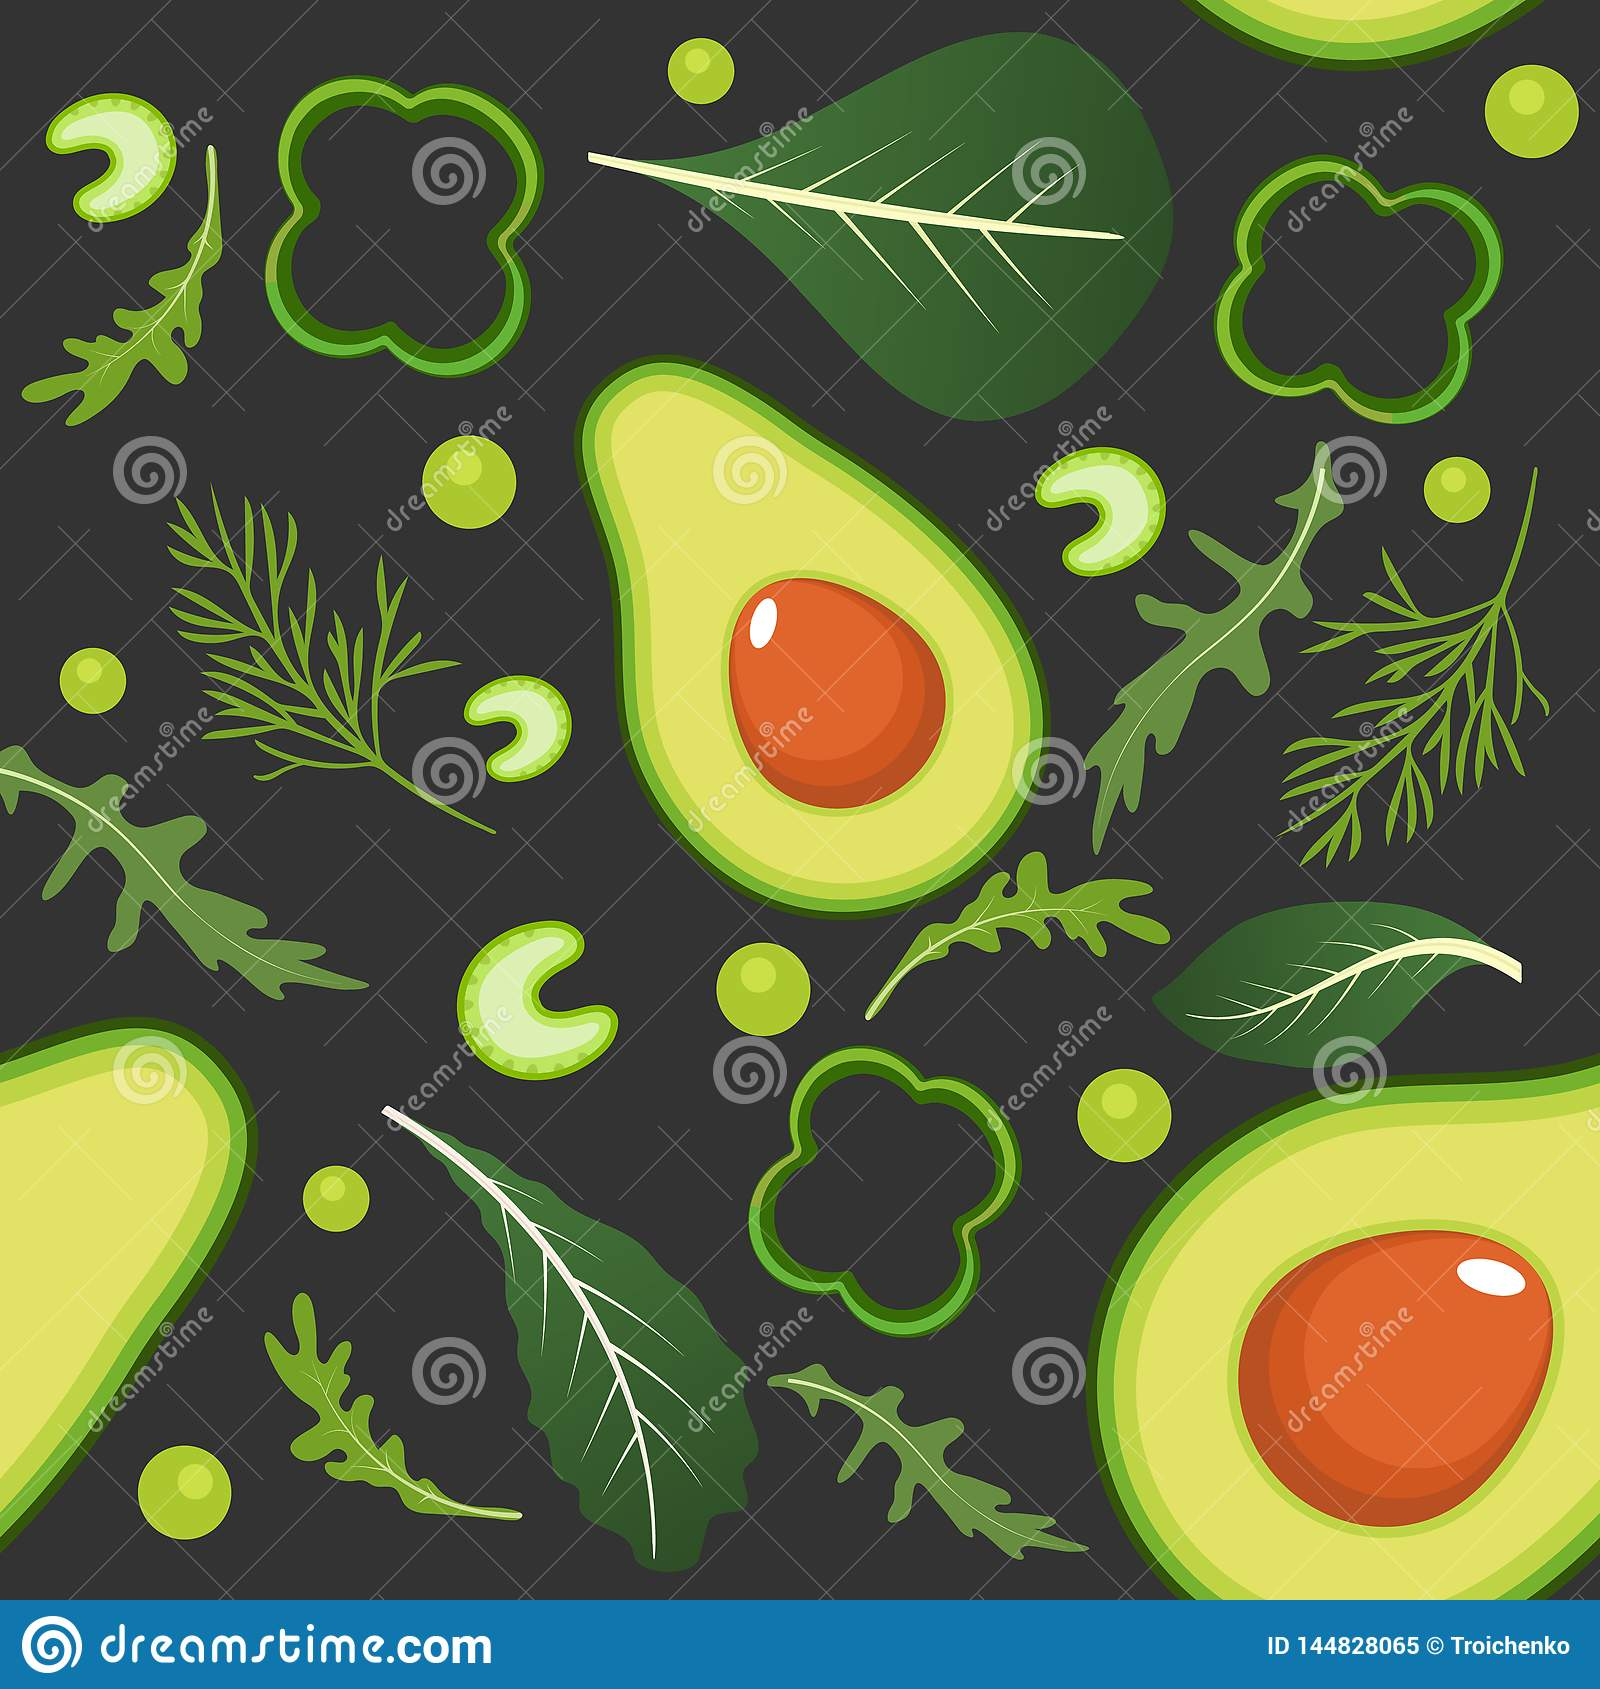 Seamless pattern on dark background with green vegetables. Avocado, paprika, green peas, celery, spinach, arugula and